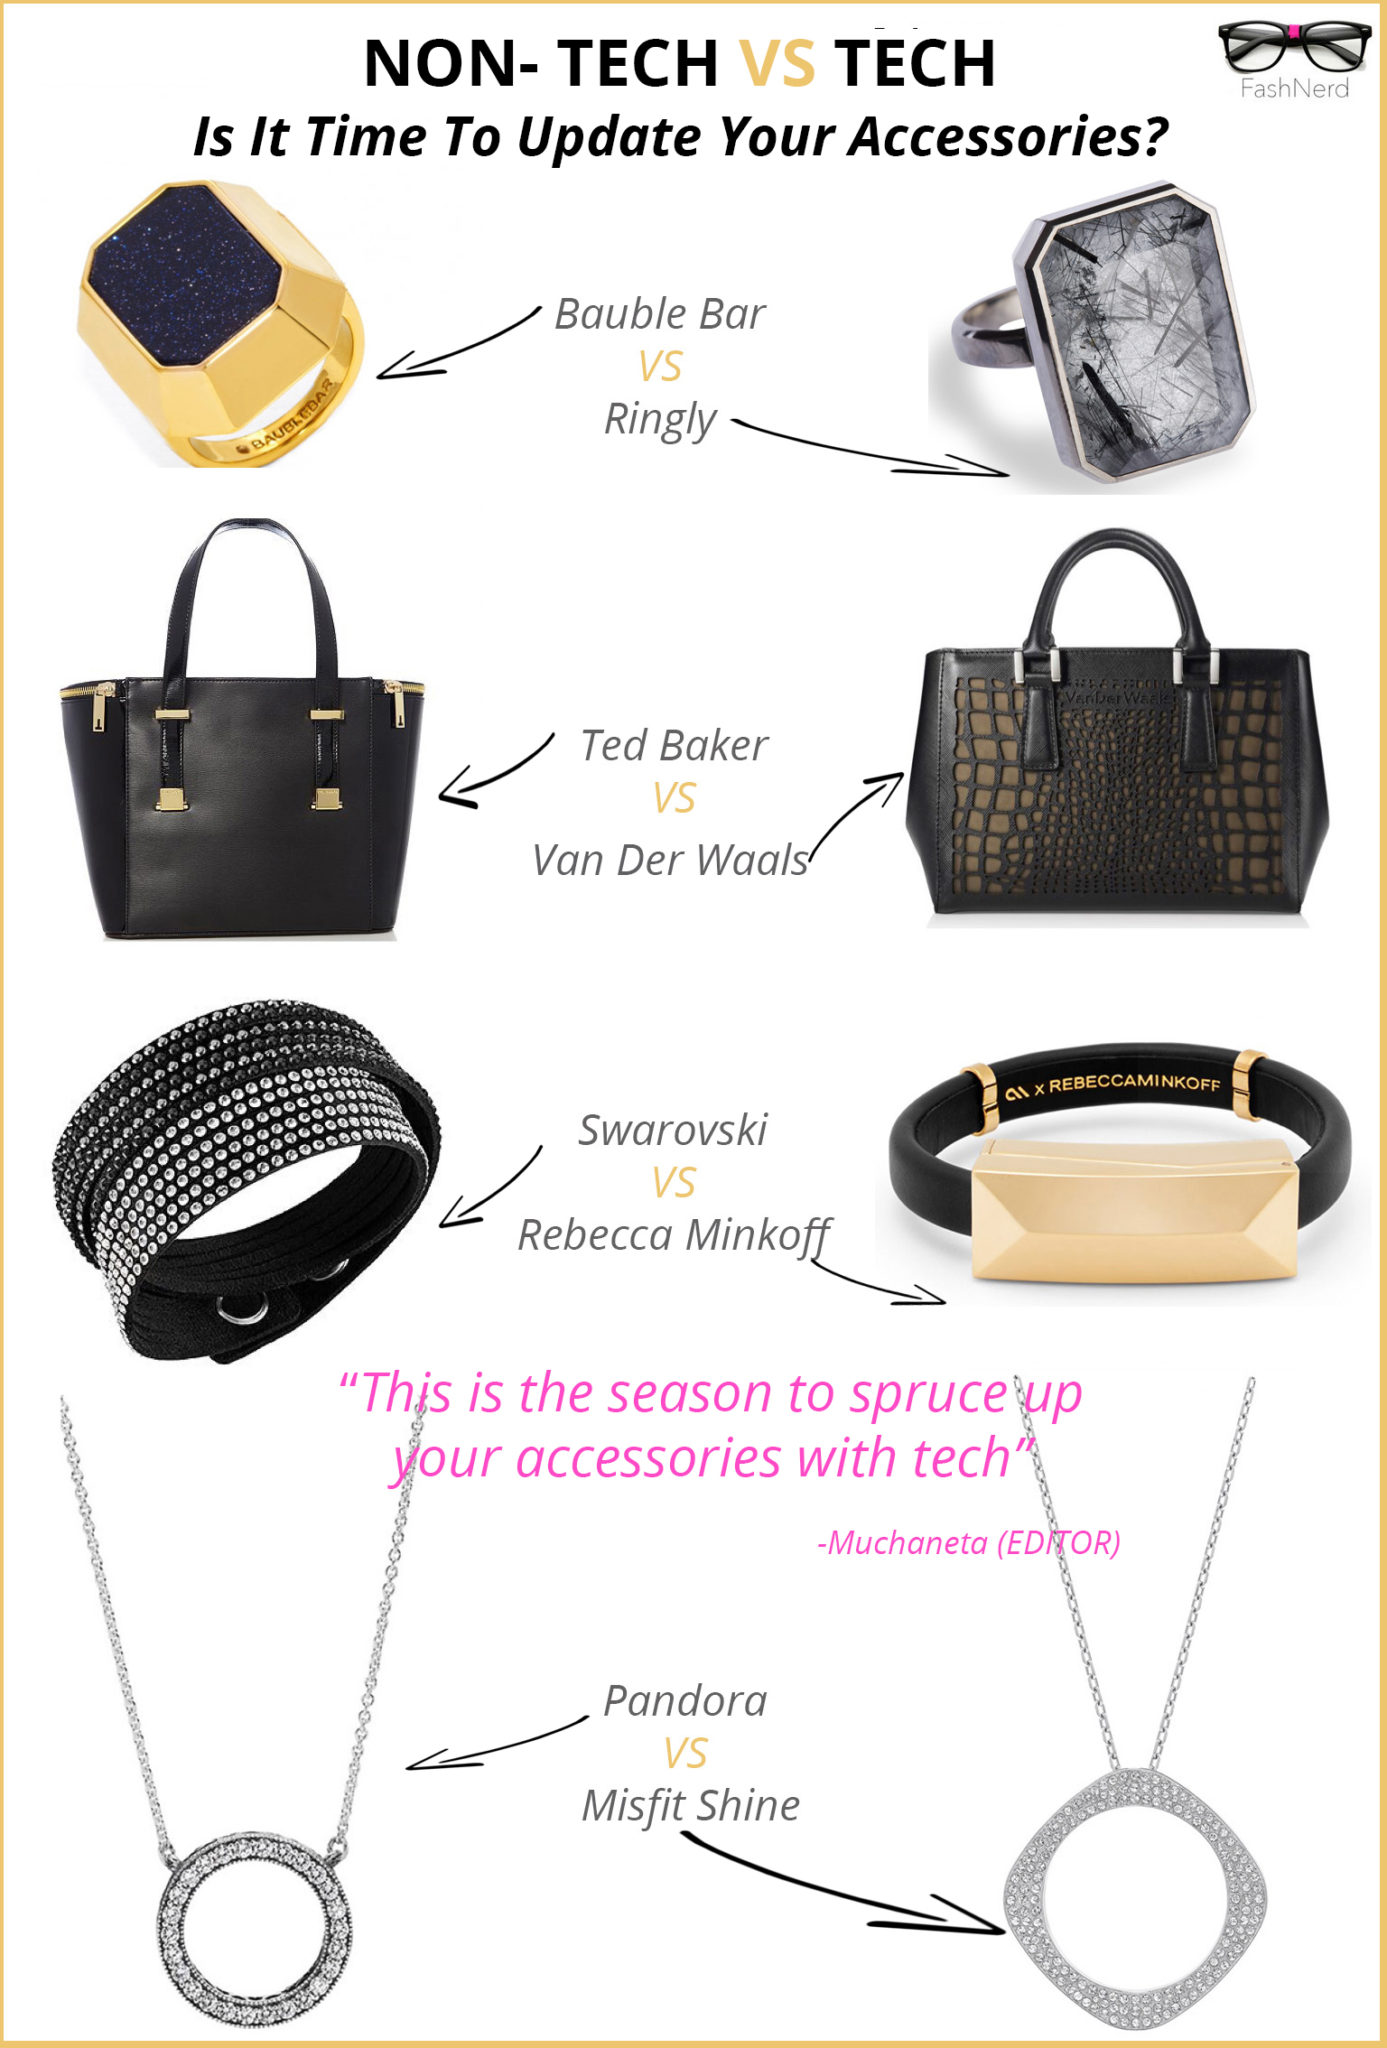 Update Your Accessories